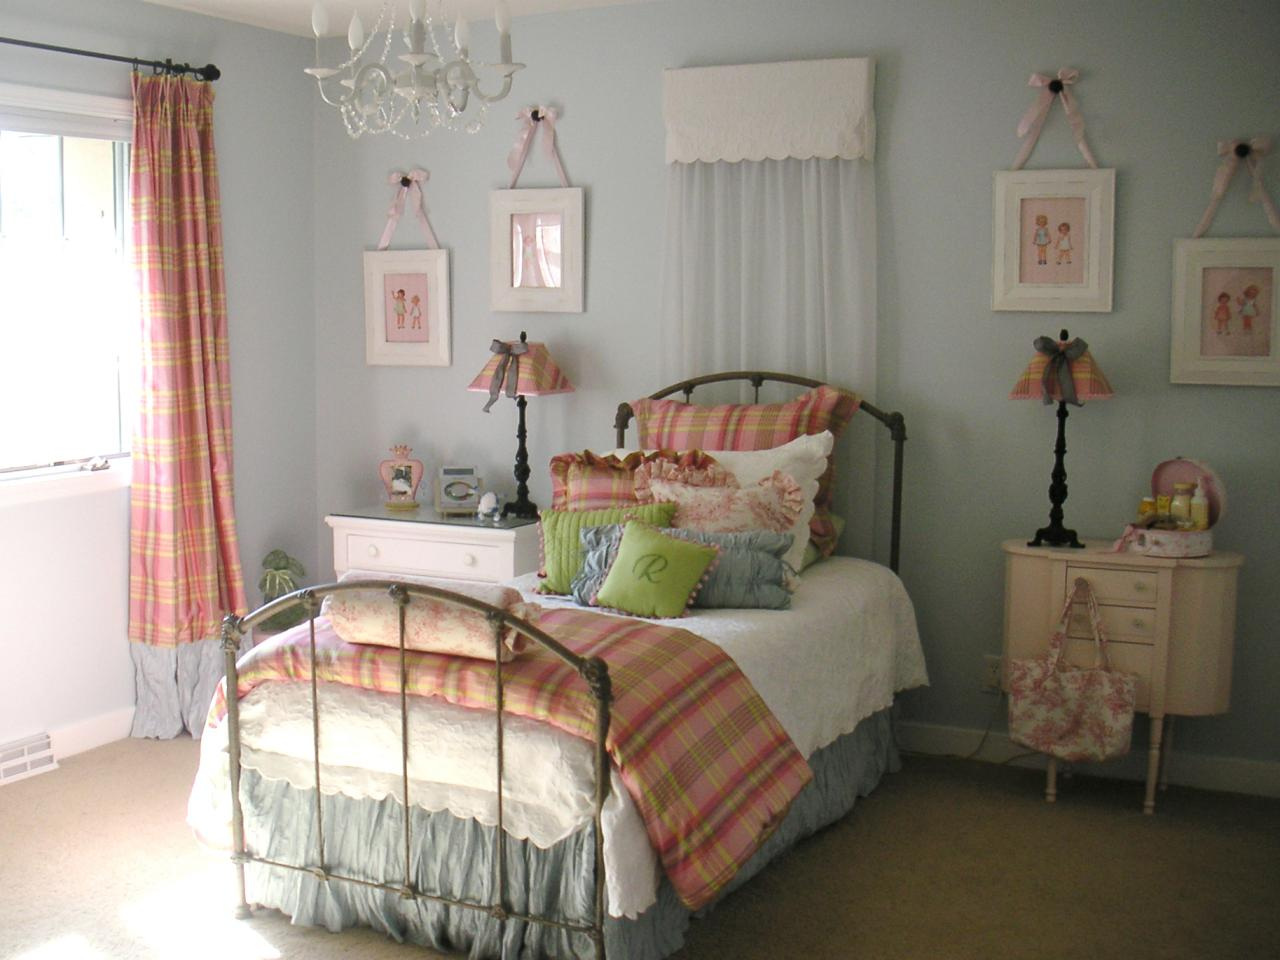 Bedroom Ideas Old Fashioned 9 year old boy bedroom ideas. home decor u year old boyu s